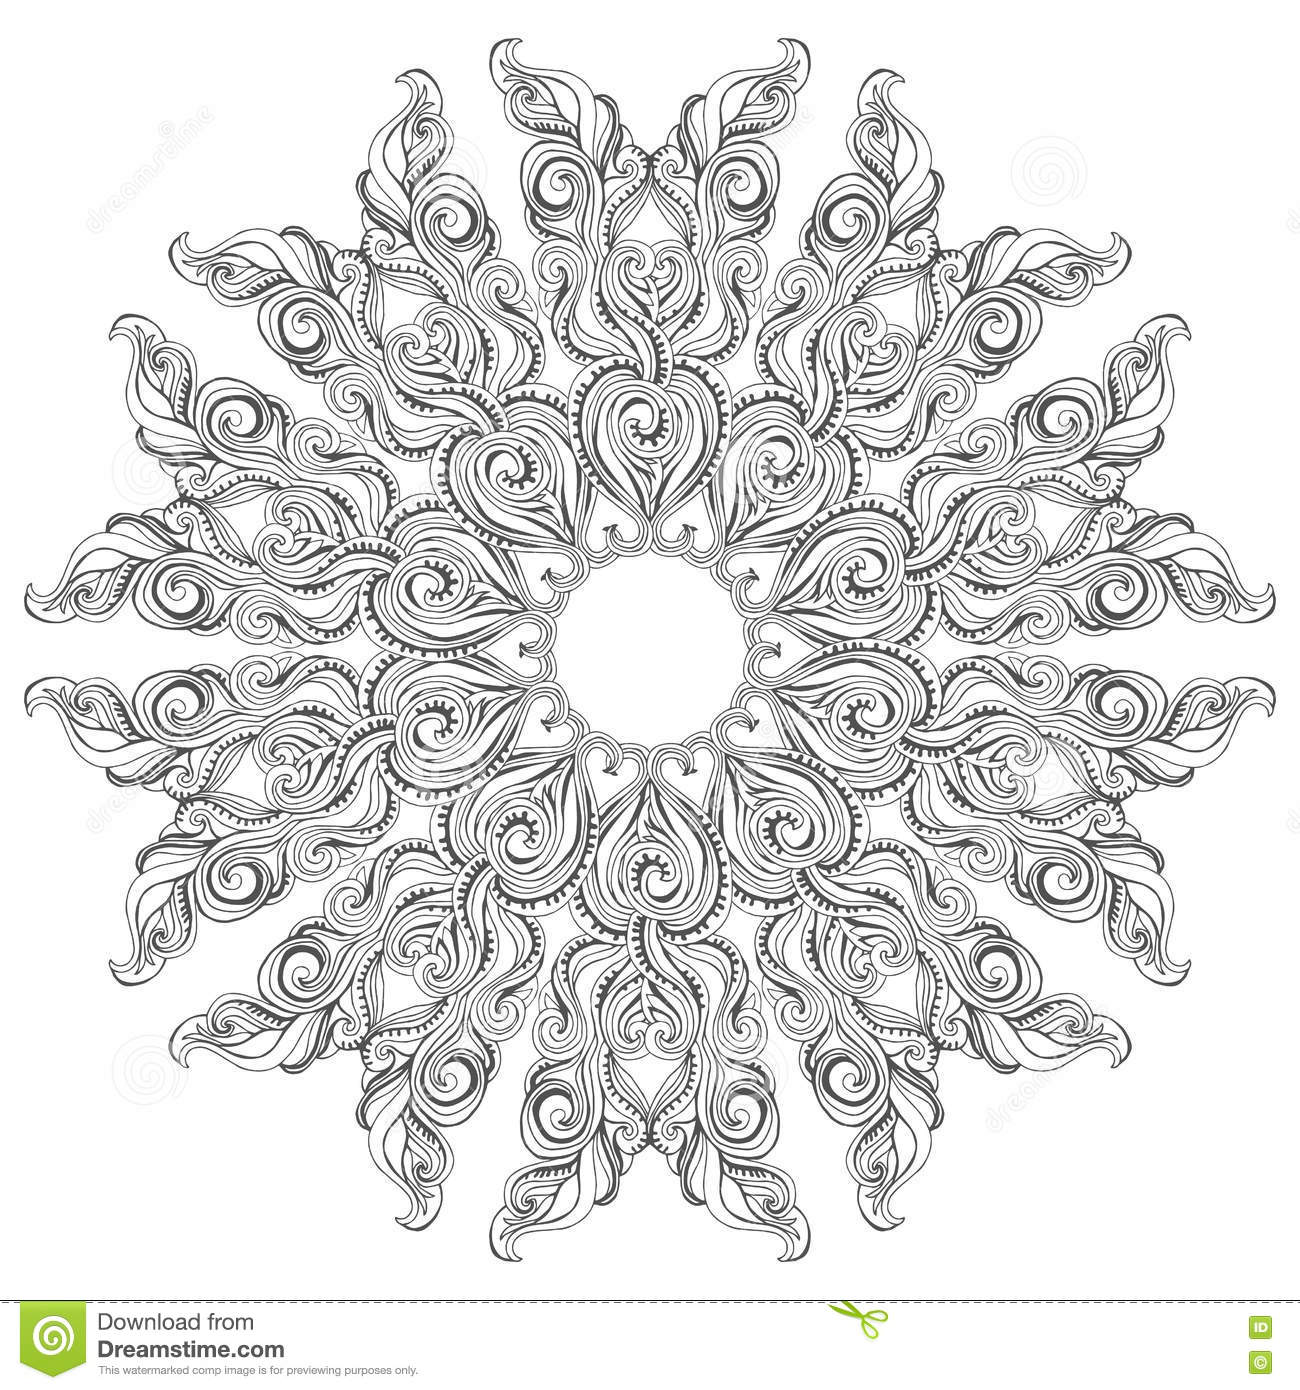 Royalty Free Vector Download Mandala Coloring Book Page For Adults And Kids Stock